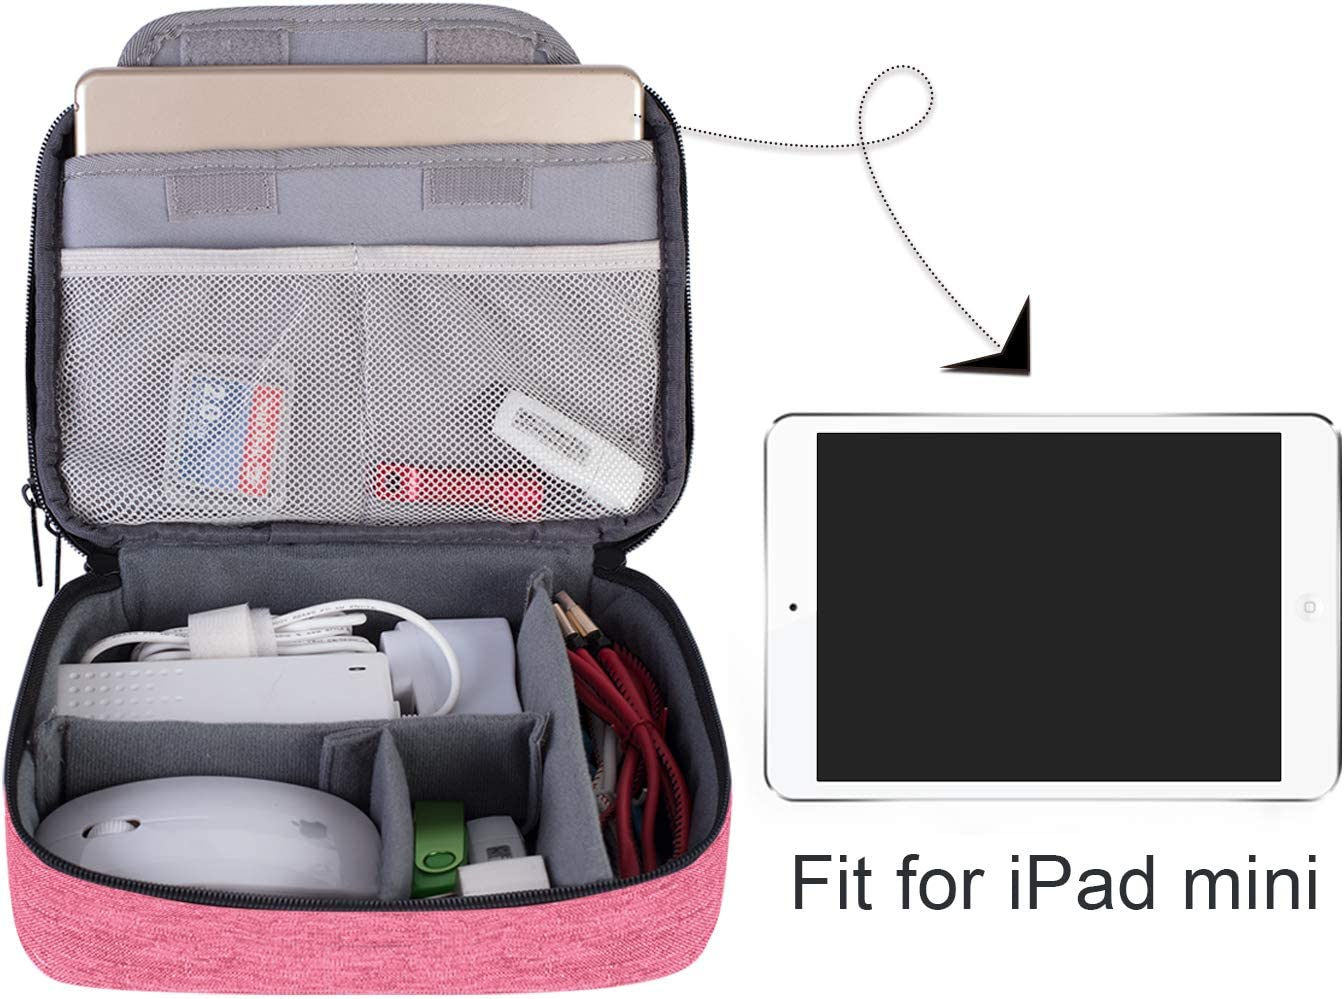 Medium,Denim Pink Power Bank and More-a Sleeve Pouch for 7.9 iPad Mini USB Flash Drive Double Layer Travel Gadget Storage Bag for Cables BUBM Electronic Organizer Cord